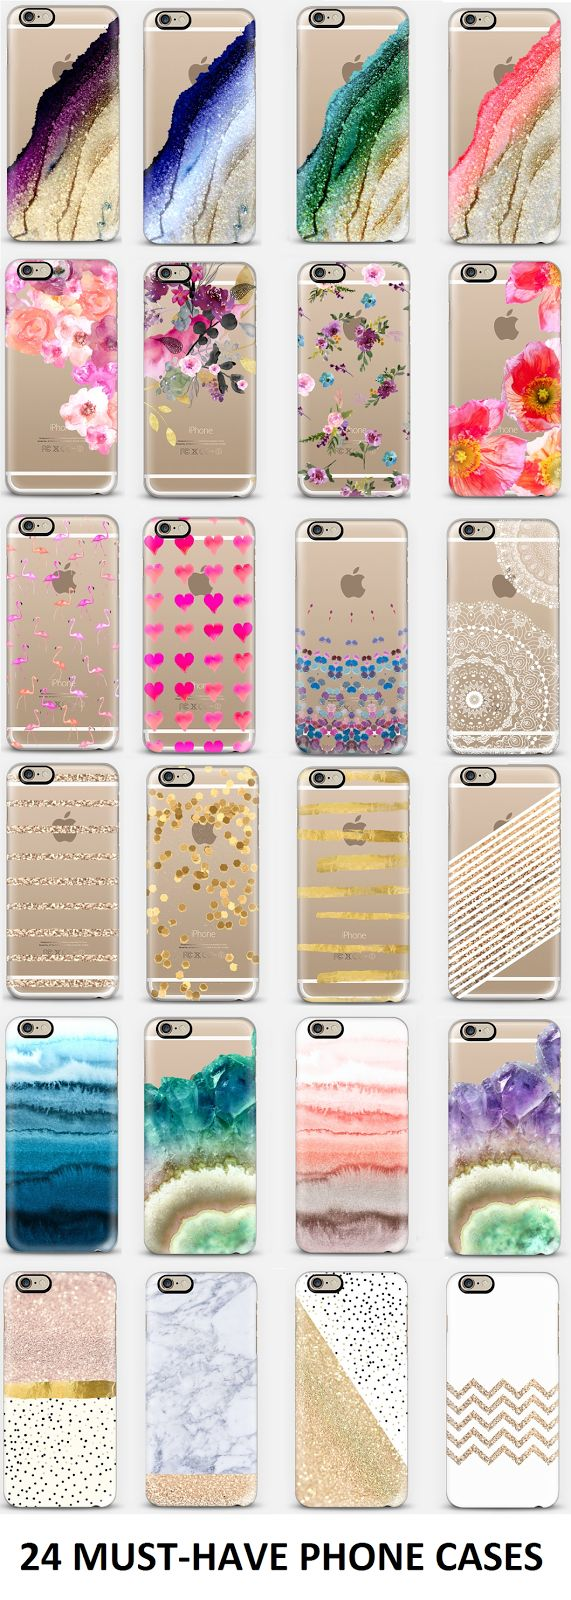 24 must-have phone cases// something plain or mostly plain; maybe with gold or marble accents